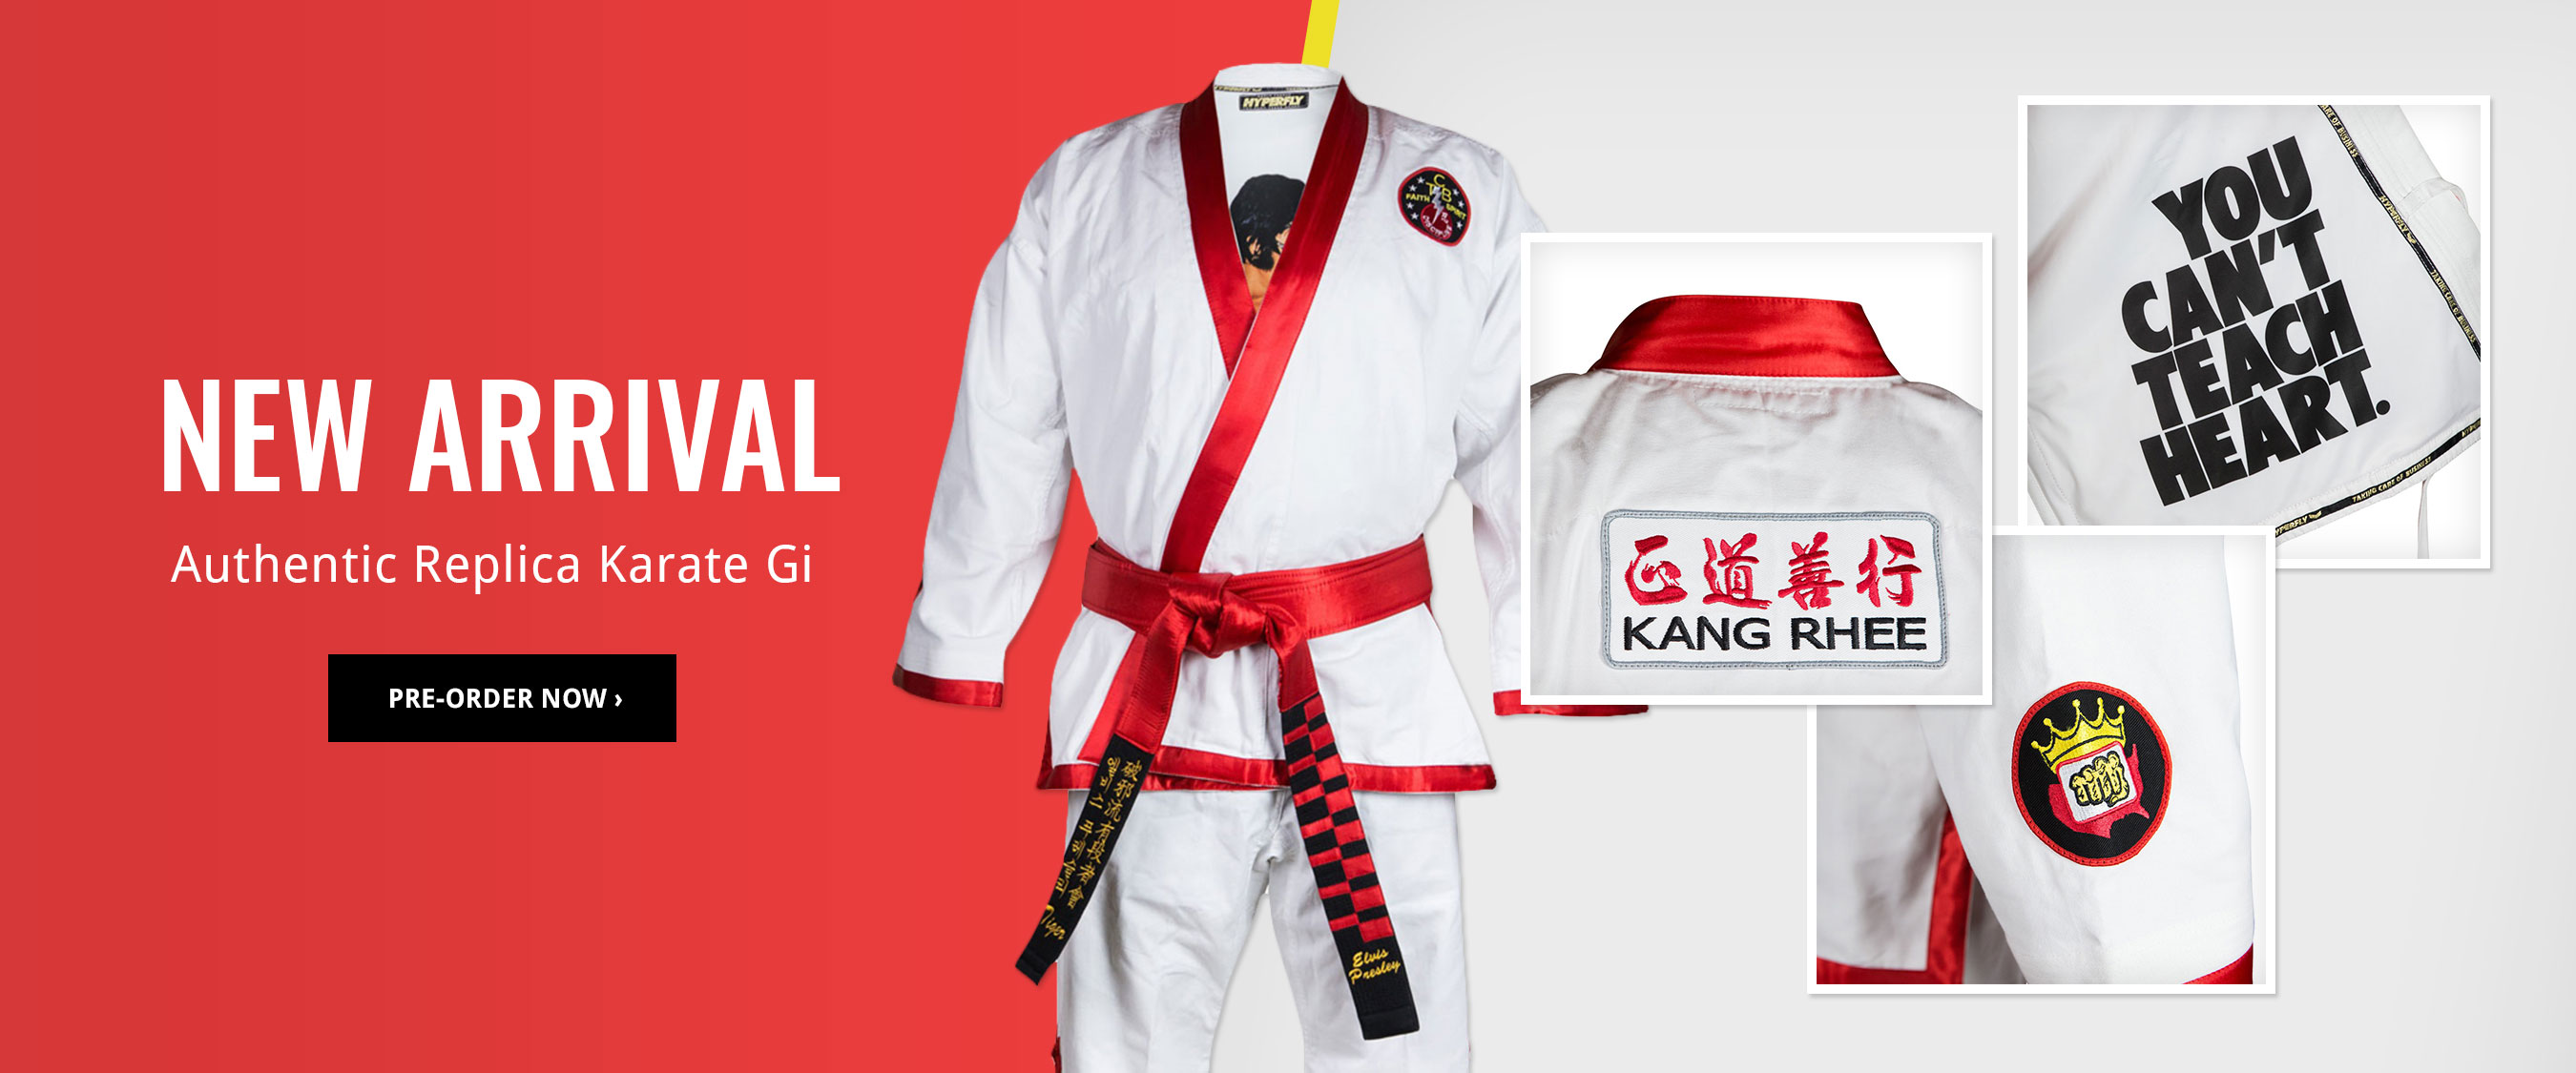 Brand New Authentic Replica Karate Gi